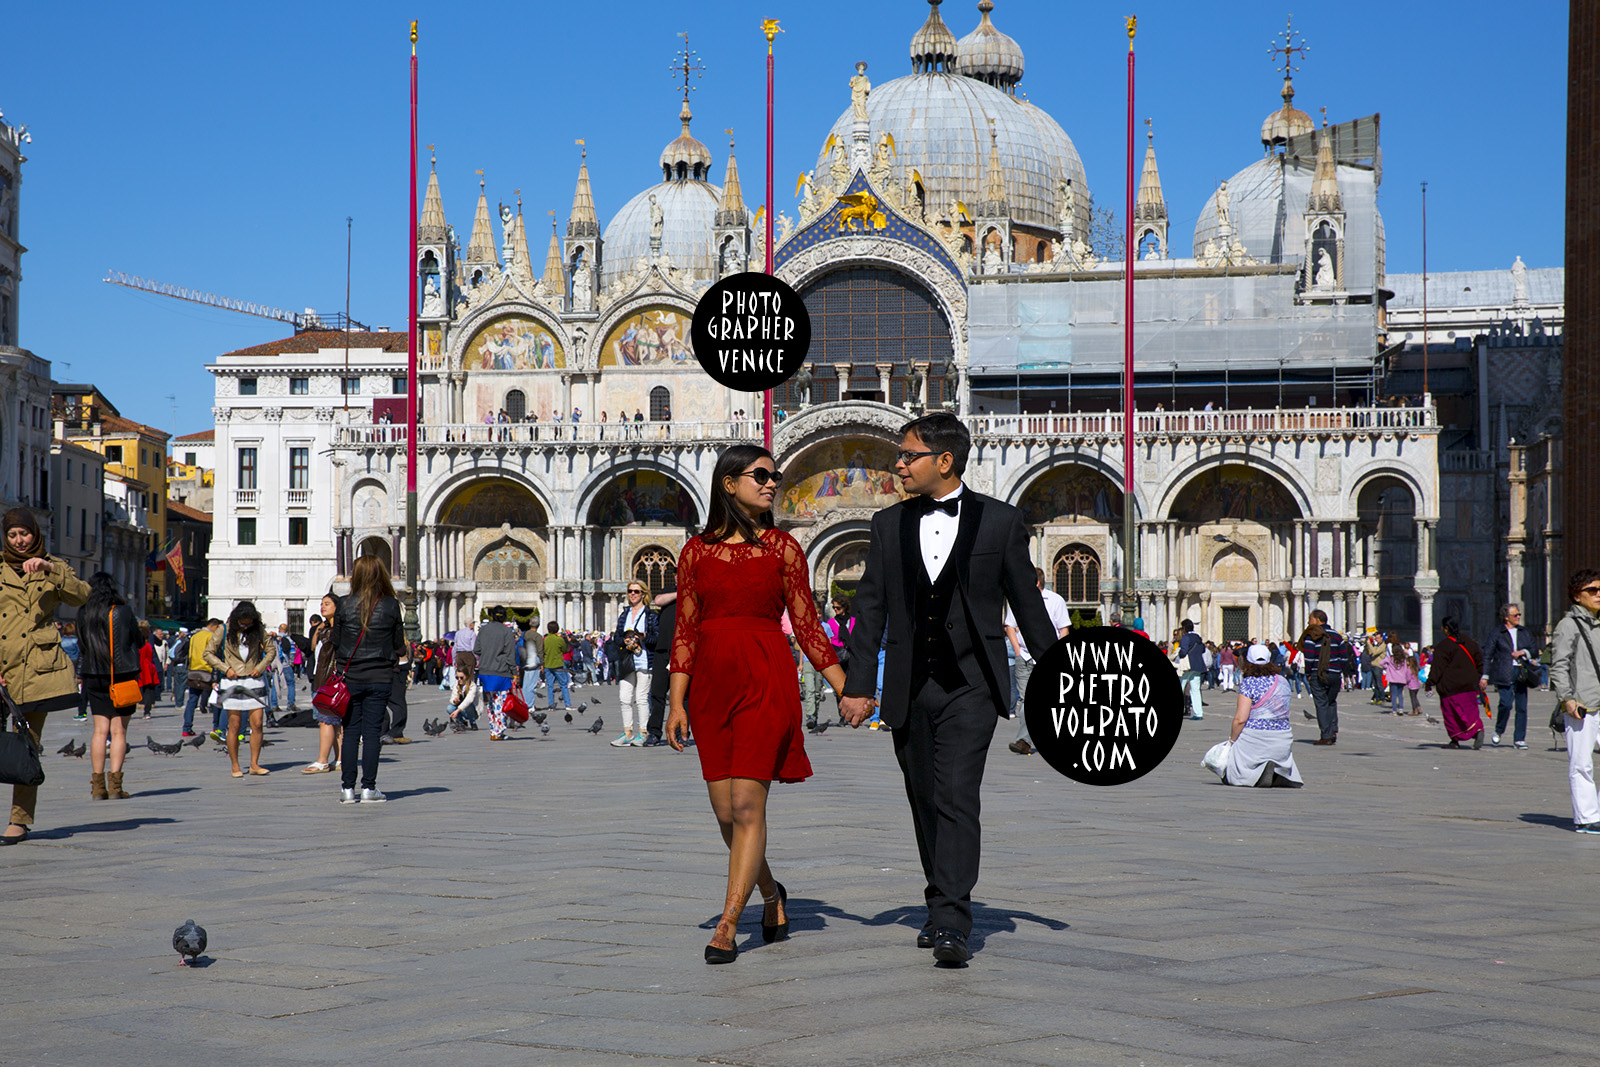 pietro volpato professional photographer in venice italy provides a honeymoon photoshoot during a romantic walk - pictures about having good time